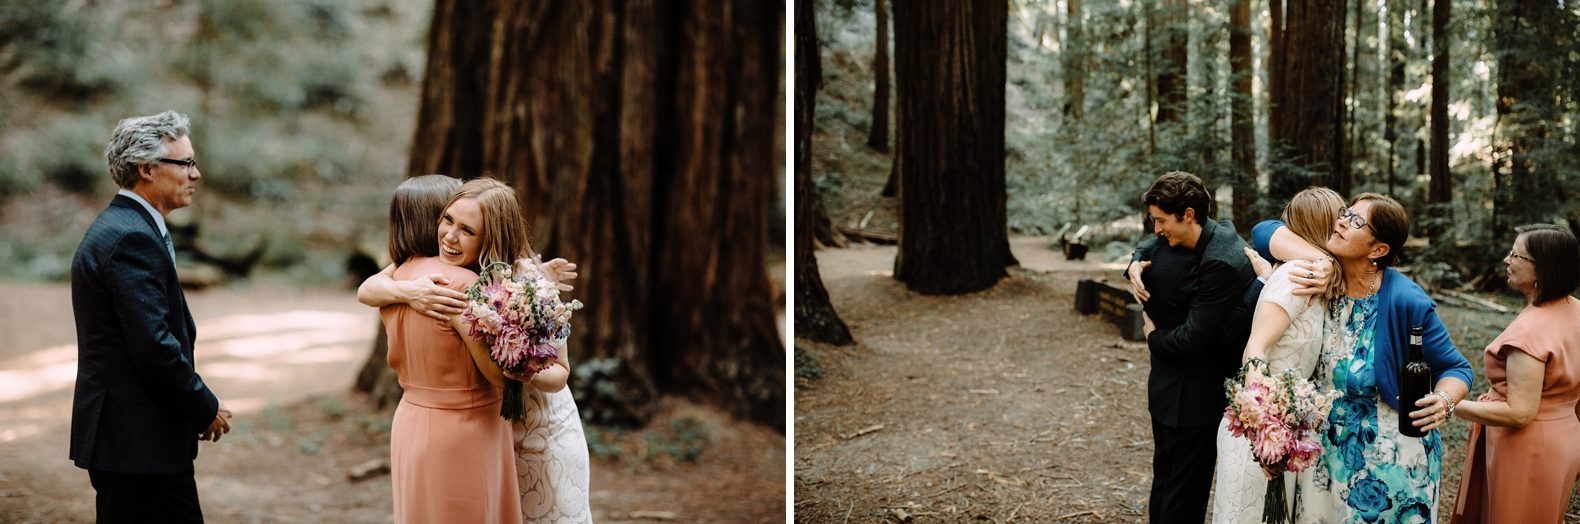 redwood-forest-elopement-0025